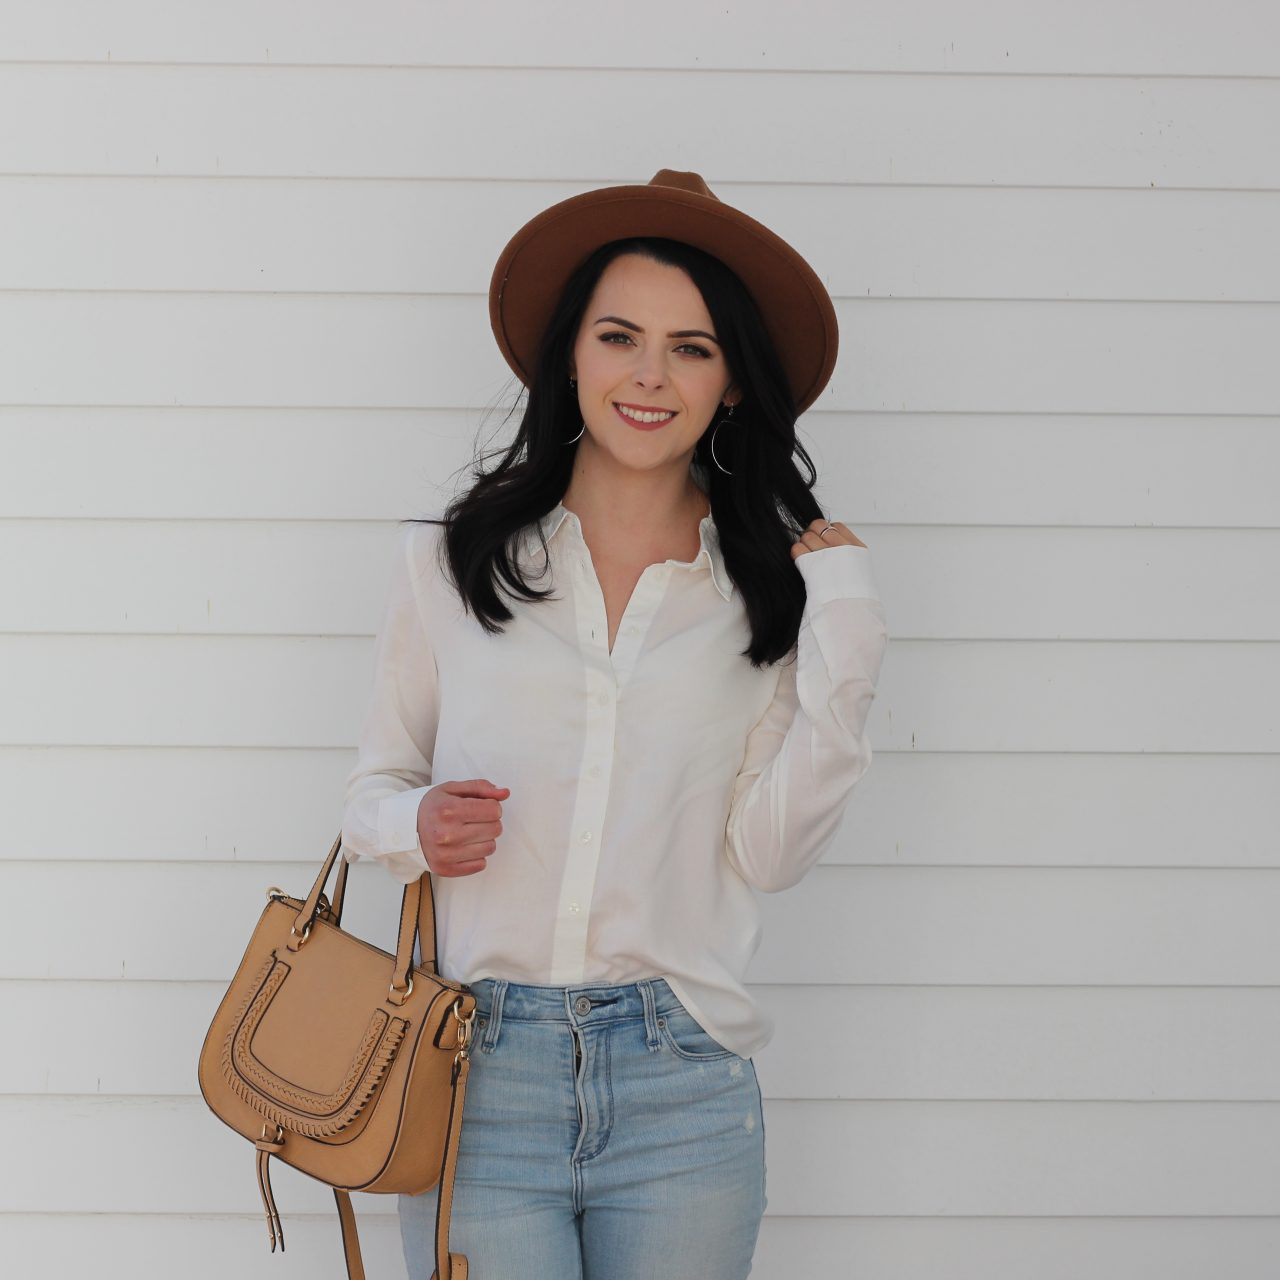 How to Style a White Button-Down Shirt With Jeans